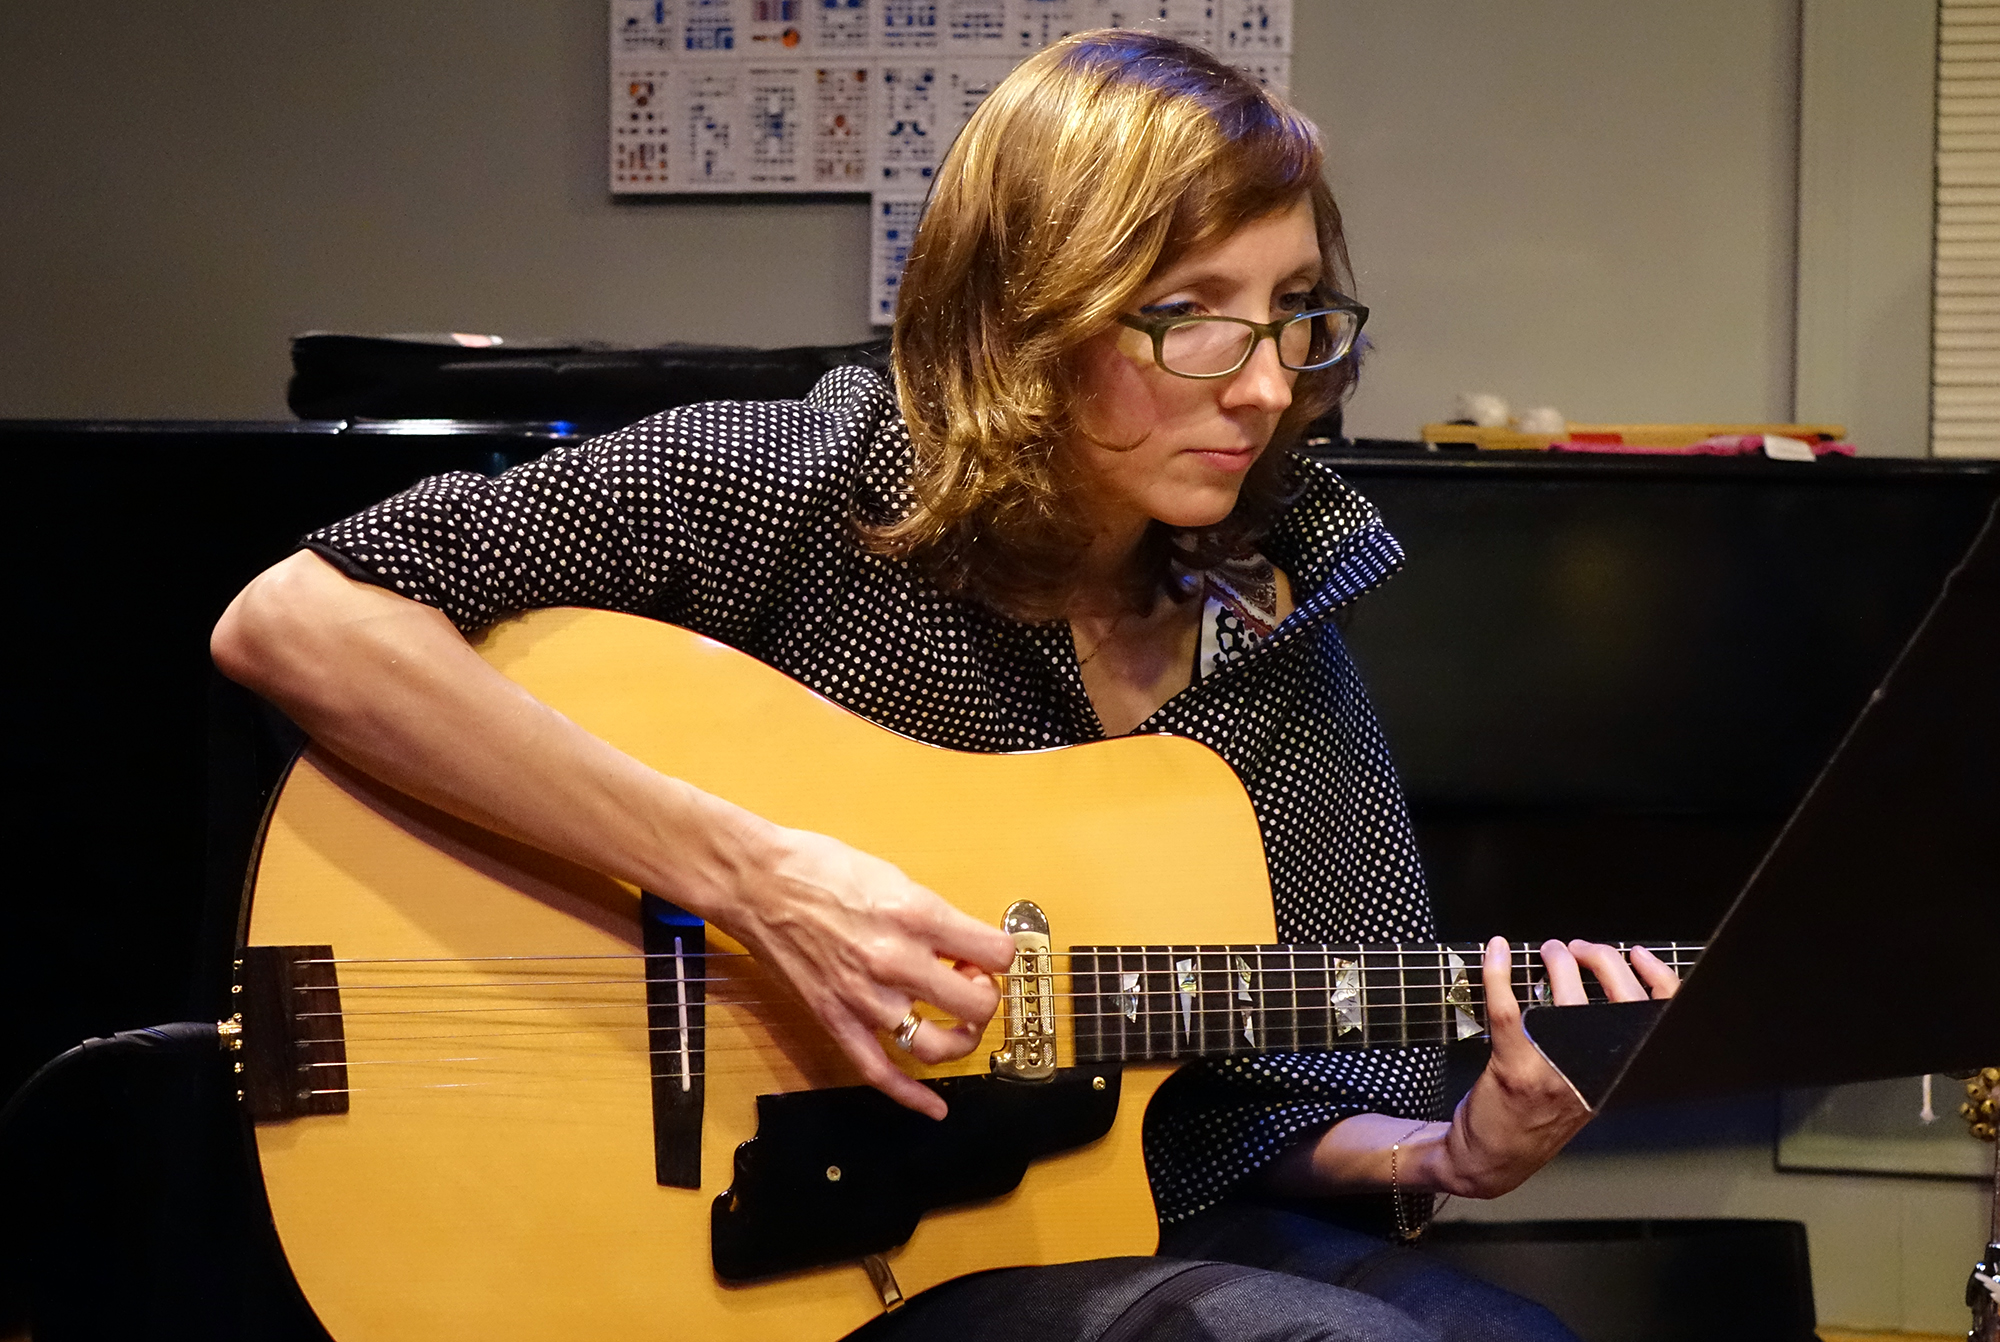 Mary Halvorson at Edgefest 2017